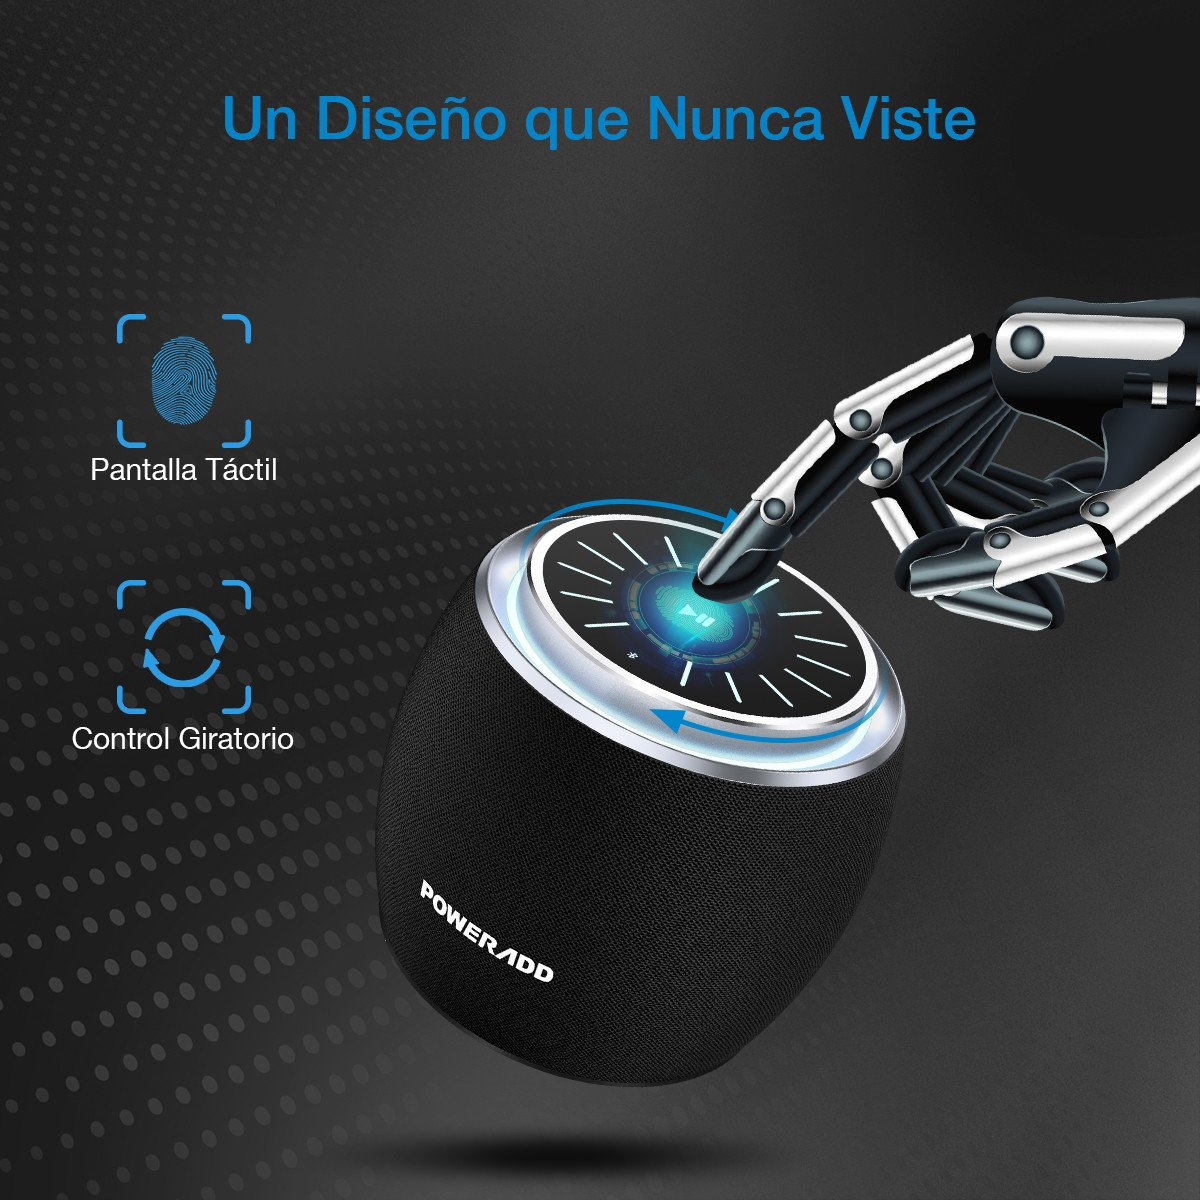 Poweradd DEE-G Mini Altavoz Inalámbrico Portátil, 7W Wireless Bluetooth 4.2, 3D Sonido Digital con 8 Horas de Emisión Continua Compatible con Android, Windows, iOS, con AUX Cable.